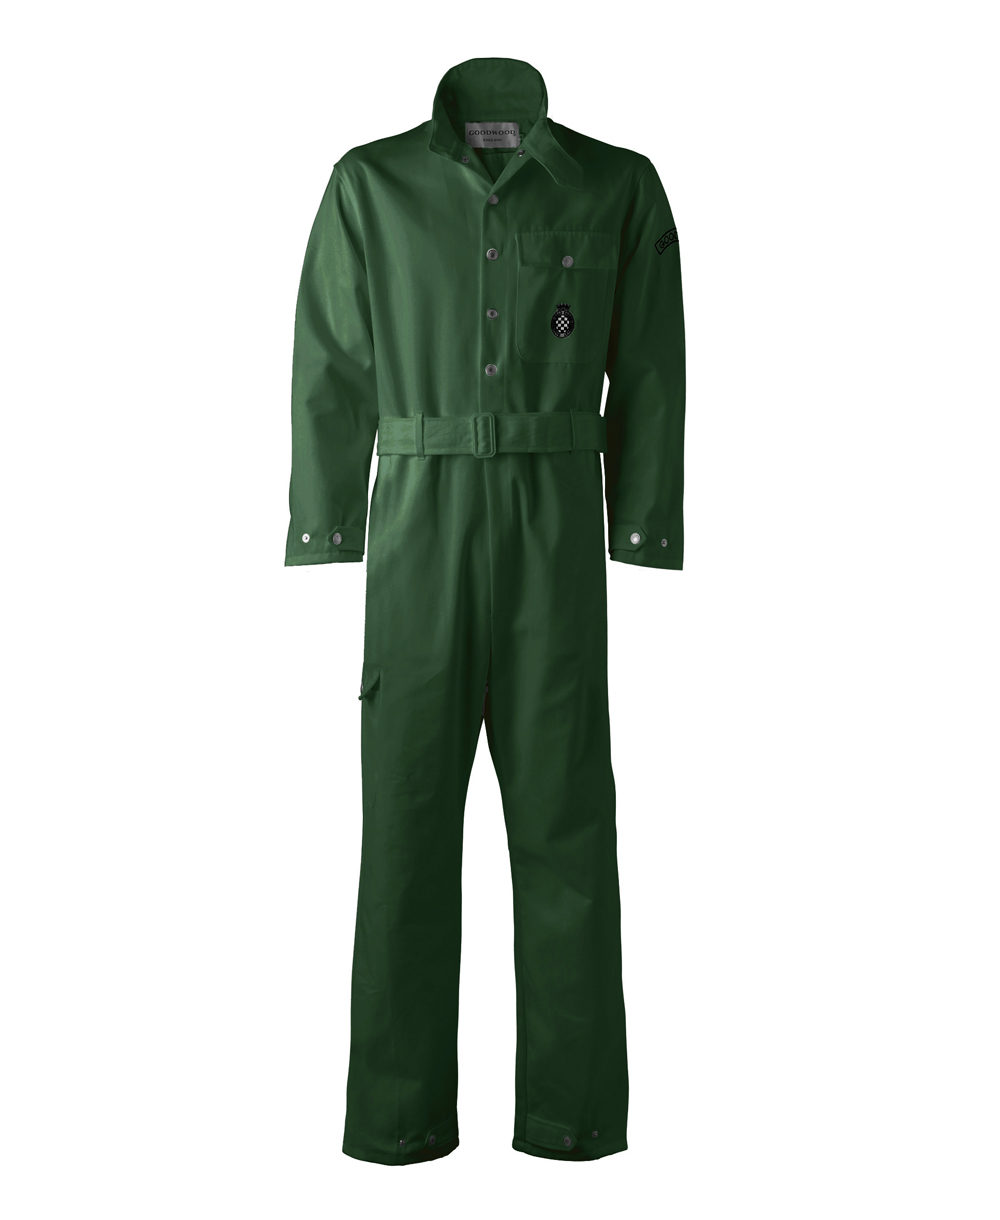 efbf8533be2b Product Title - GRRC Adults Overalls Racing Green